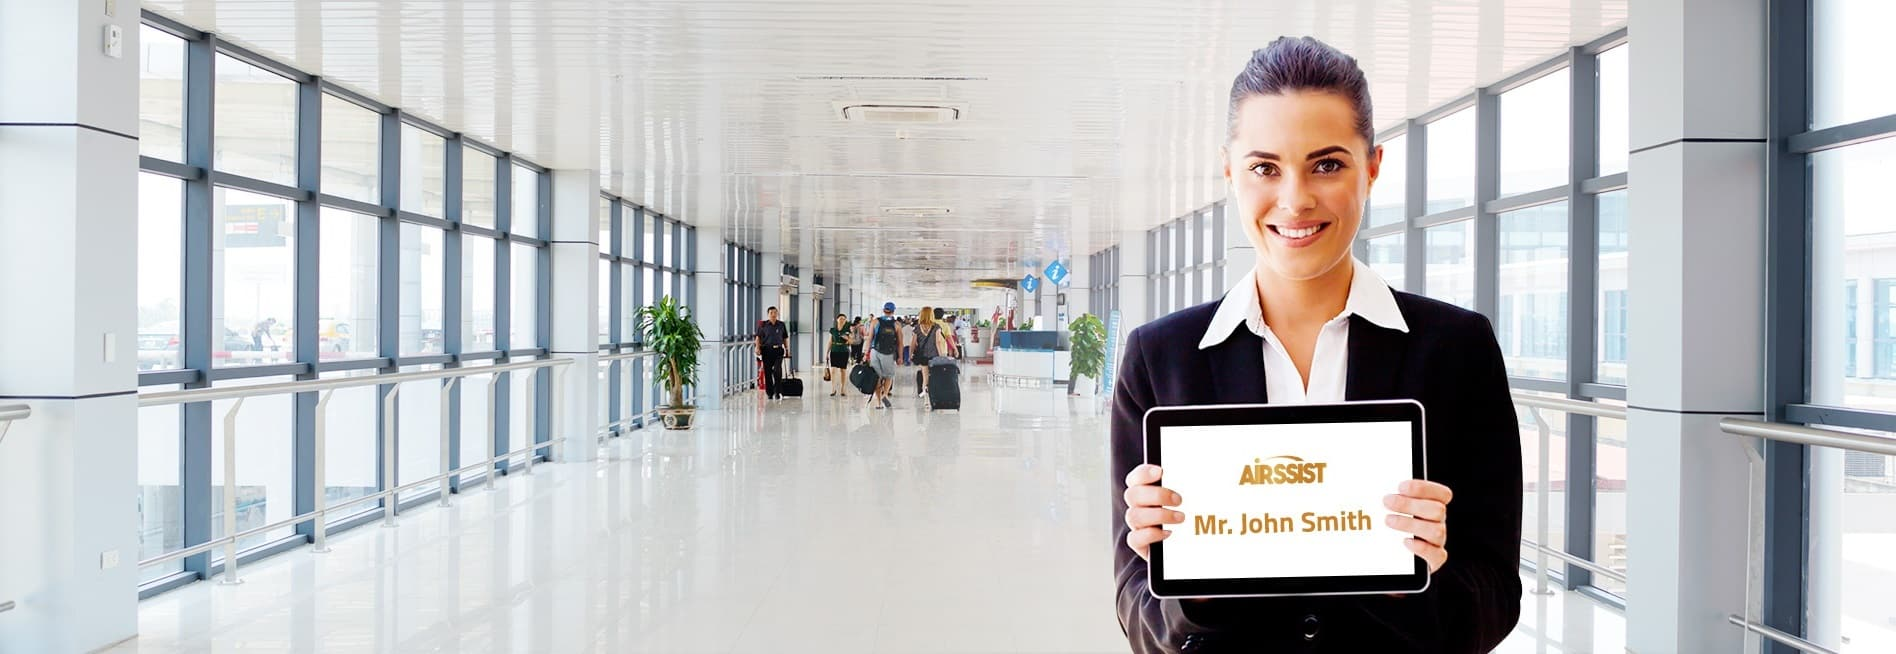 Airport Vip Services And Special Concierge Assistance Worldwide